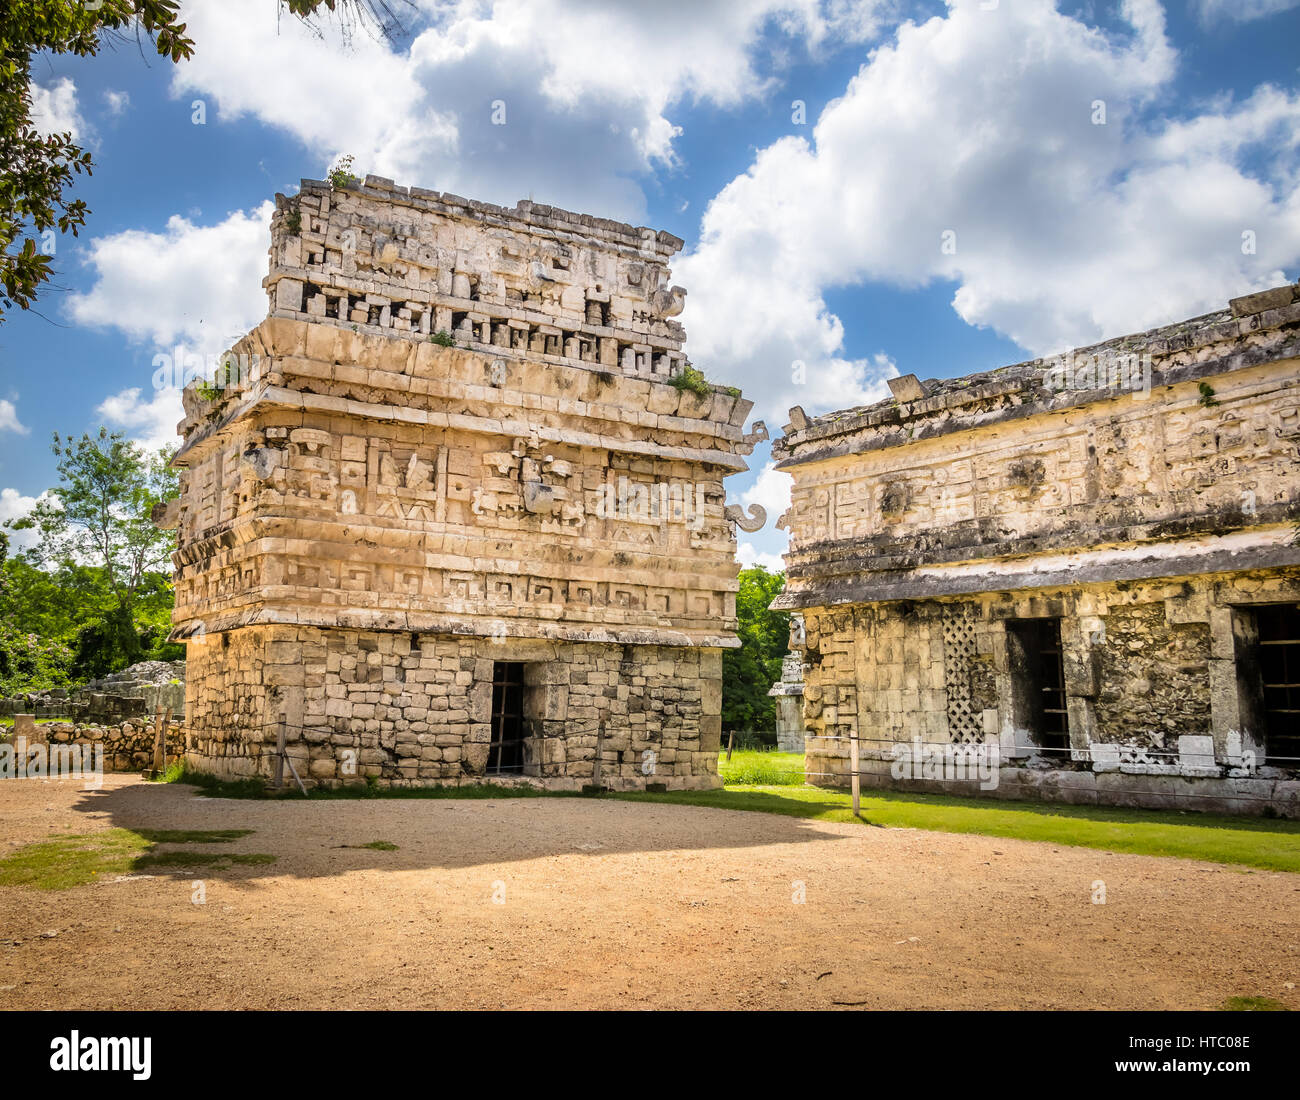 Church Building in Chichen Itza - Yucatan, Mexico - Stock Image